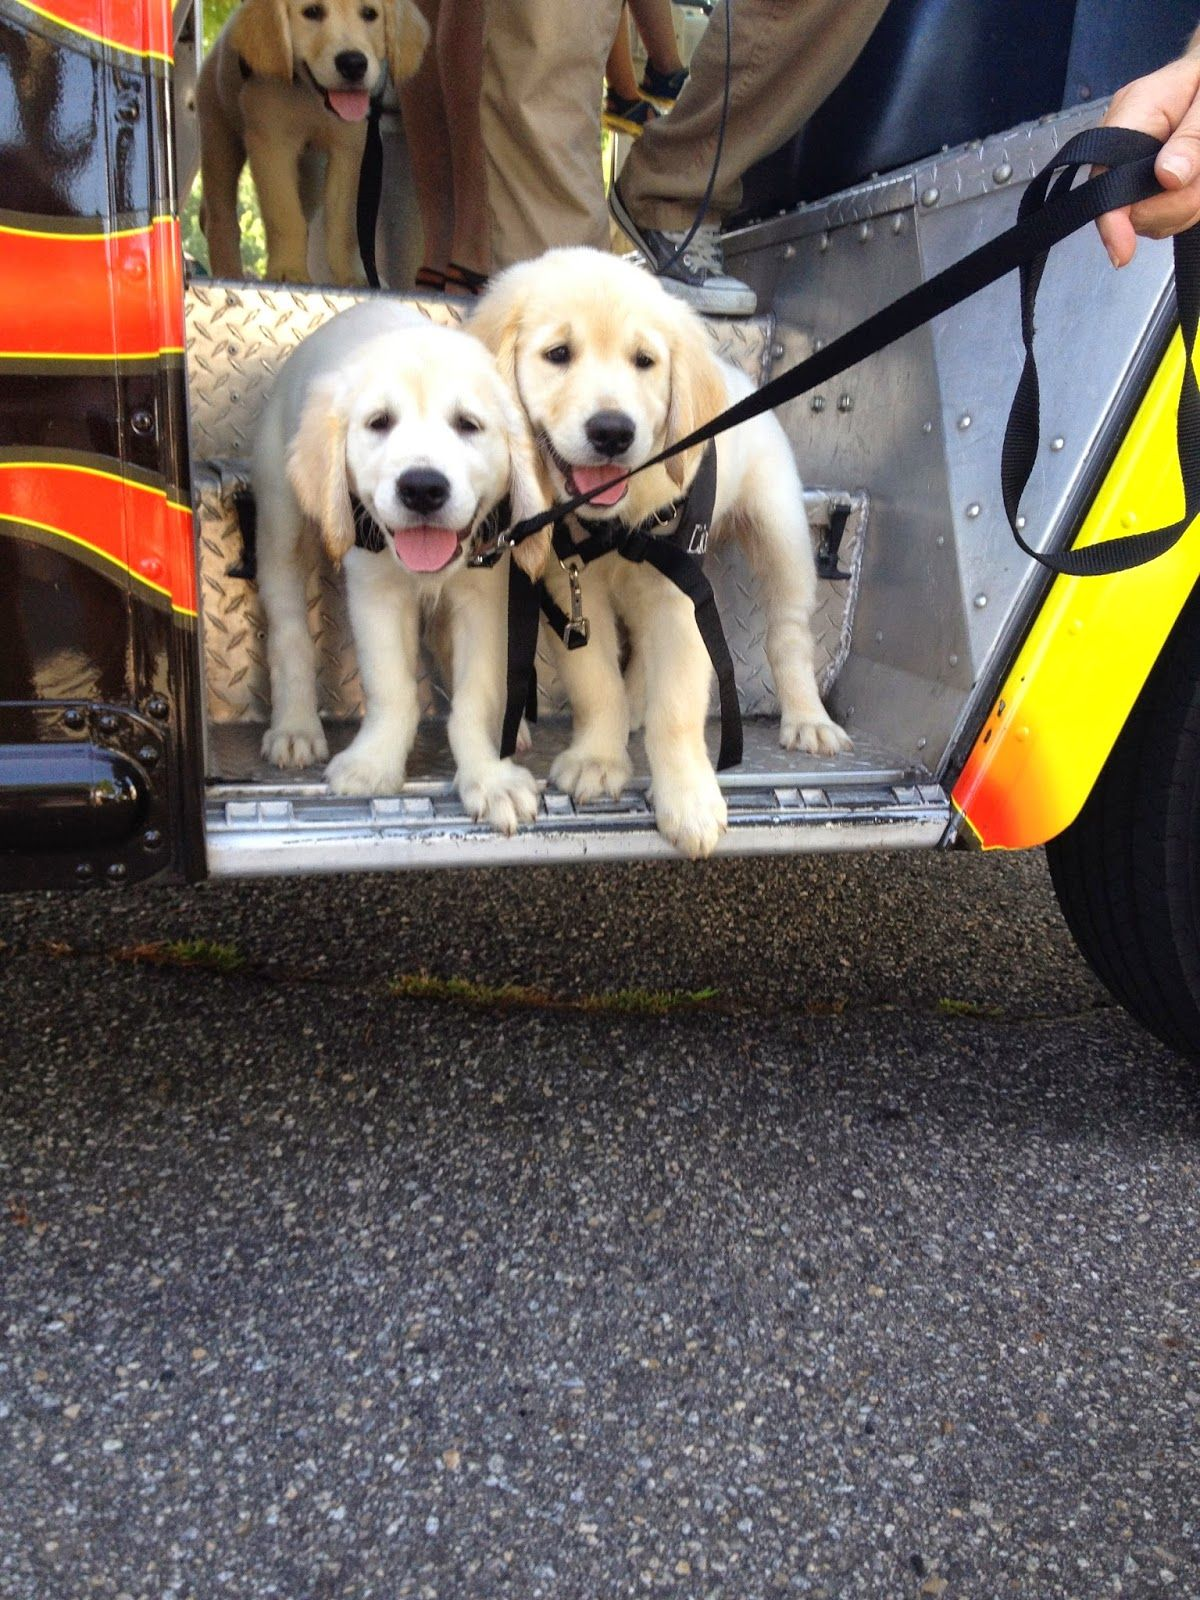 Vroom Vroom Service dogs, Puppies, Dogs